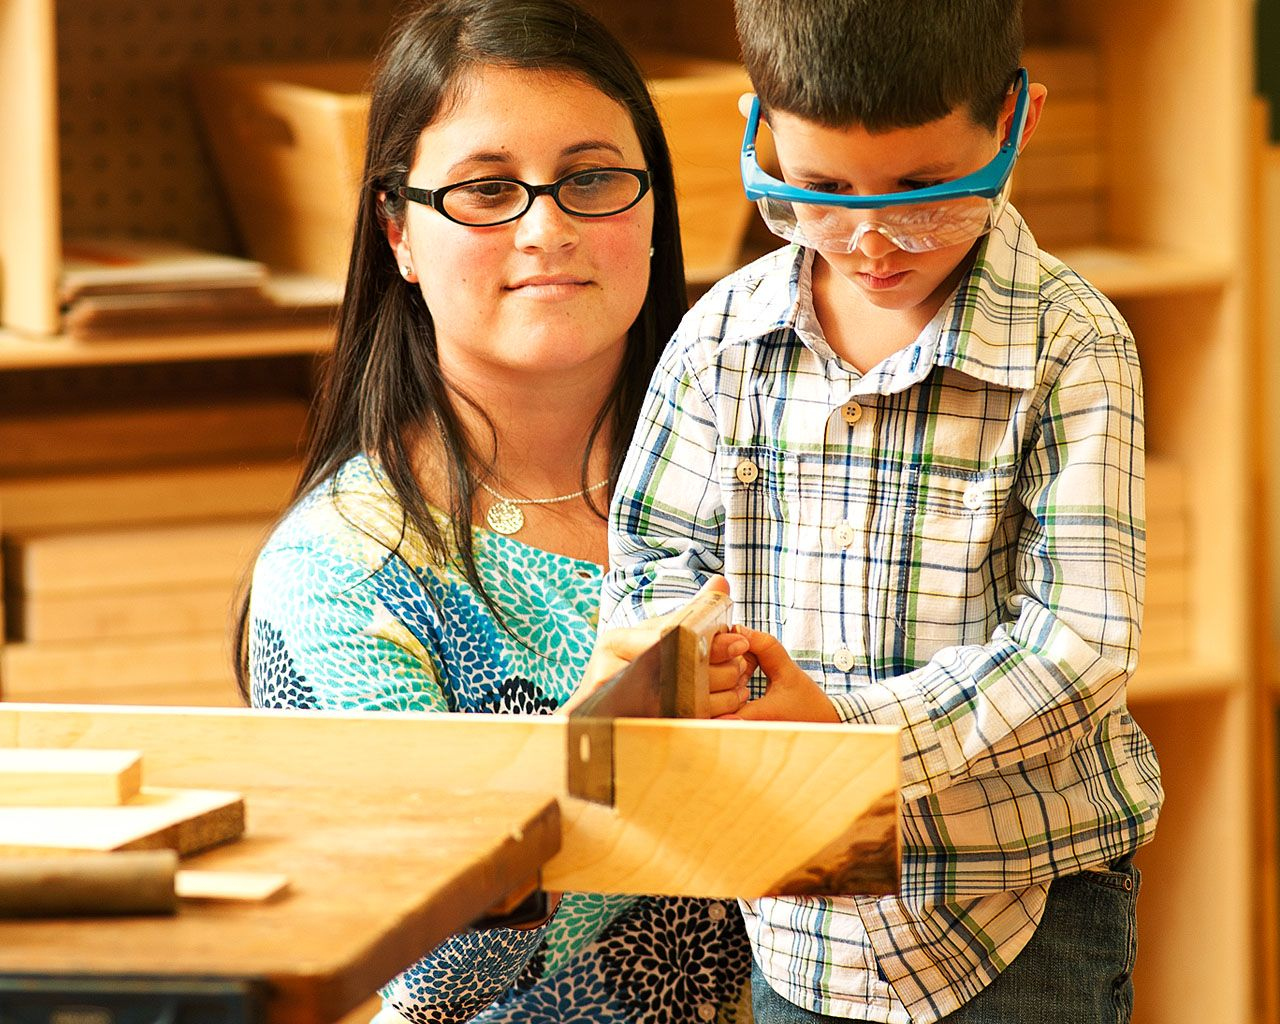 Woodworking With Children Natural #stem Activities